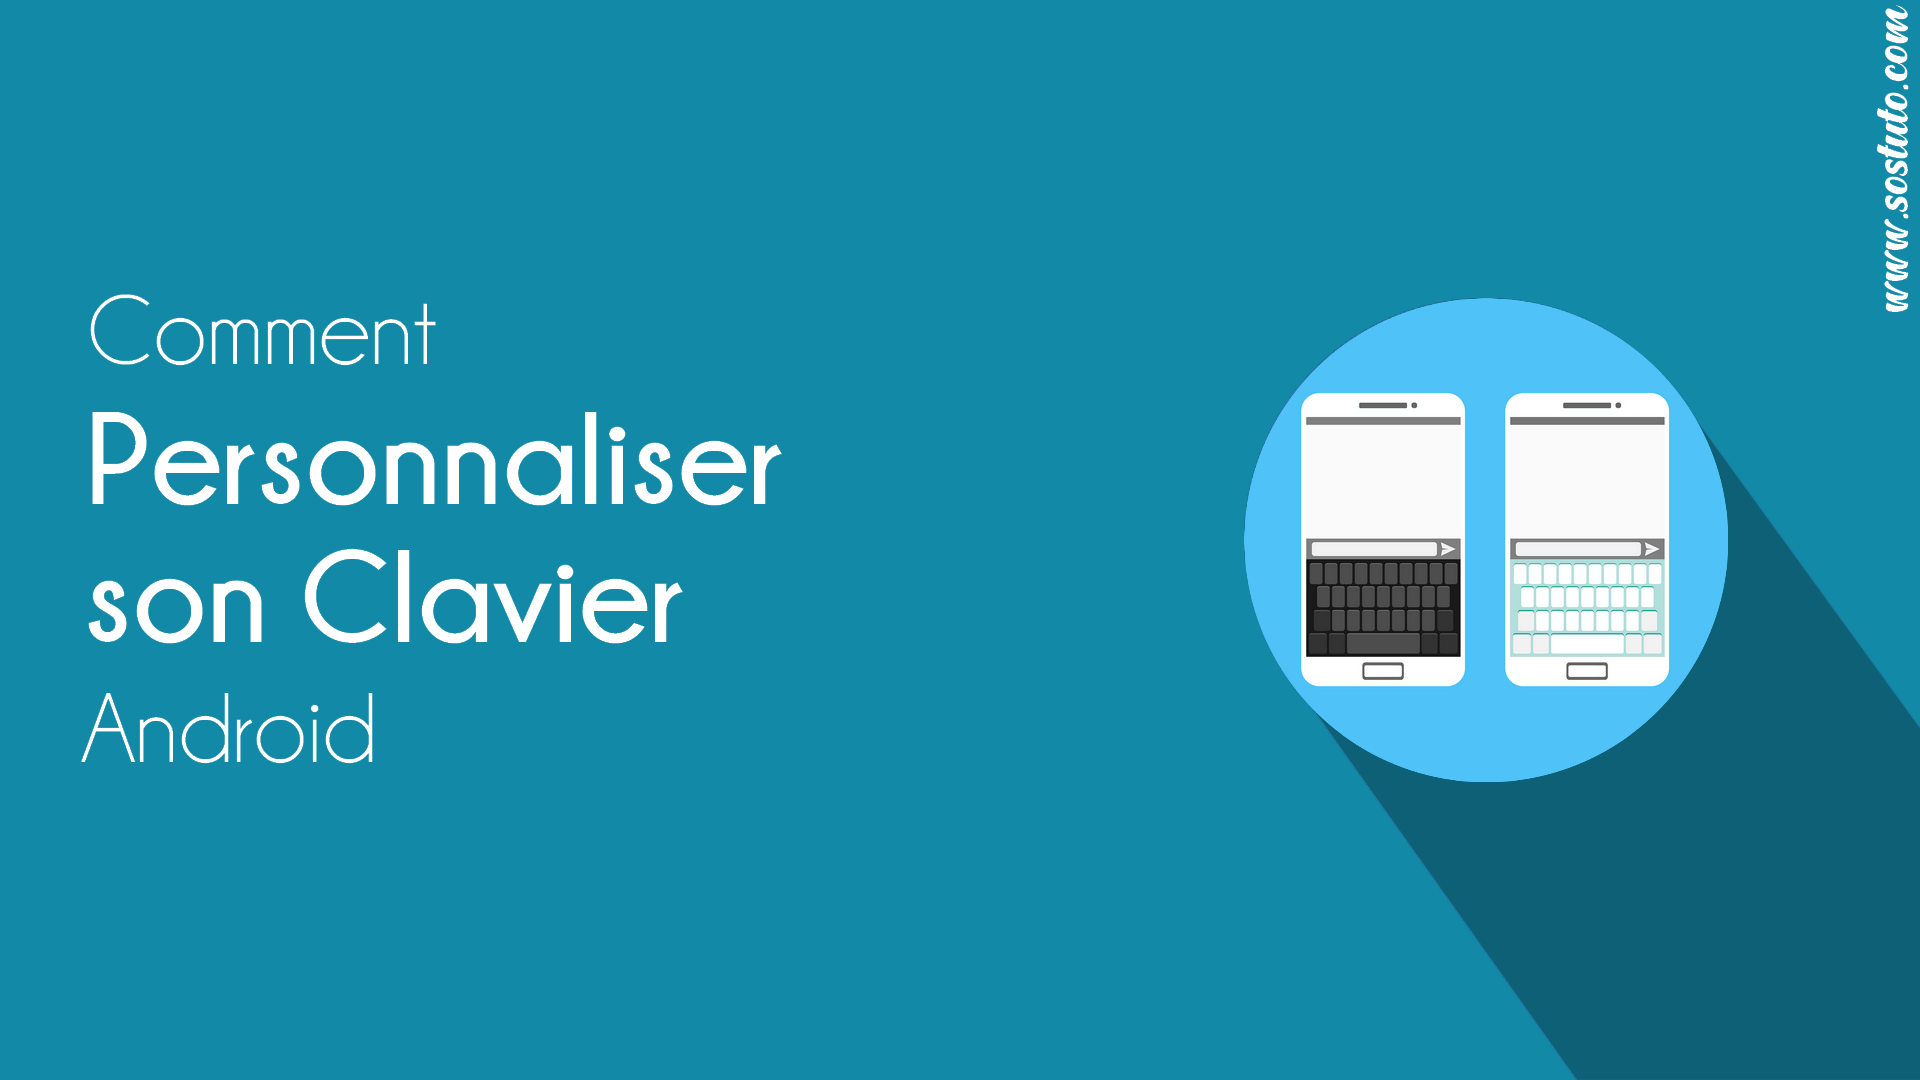 personnaliser clavier Android Changer la Couleur du clavier Android par une autre couleur ou une image